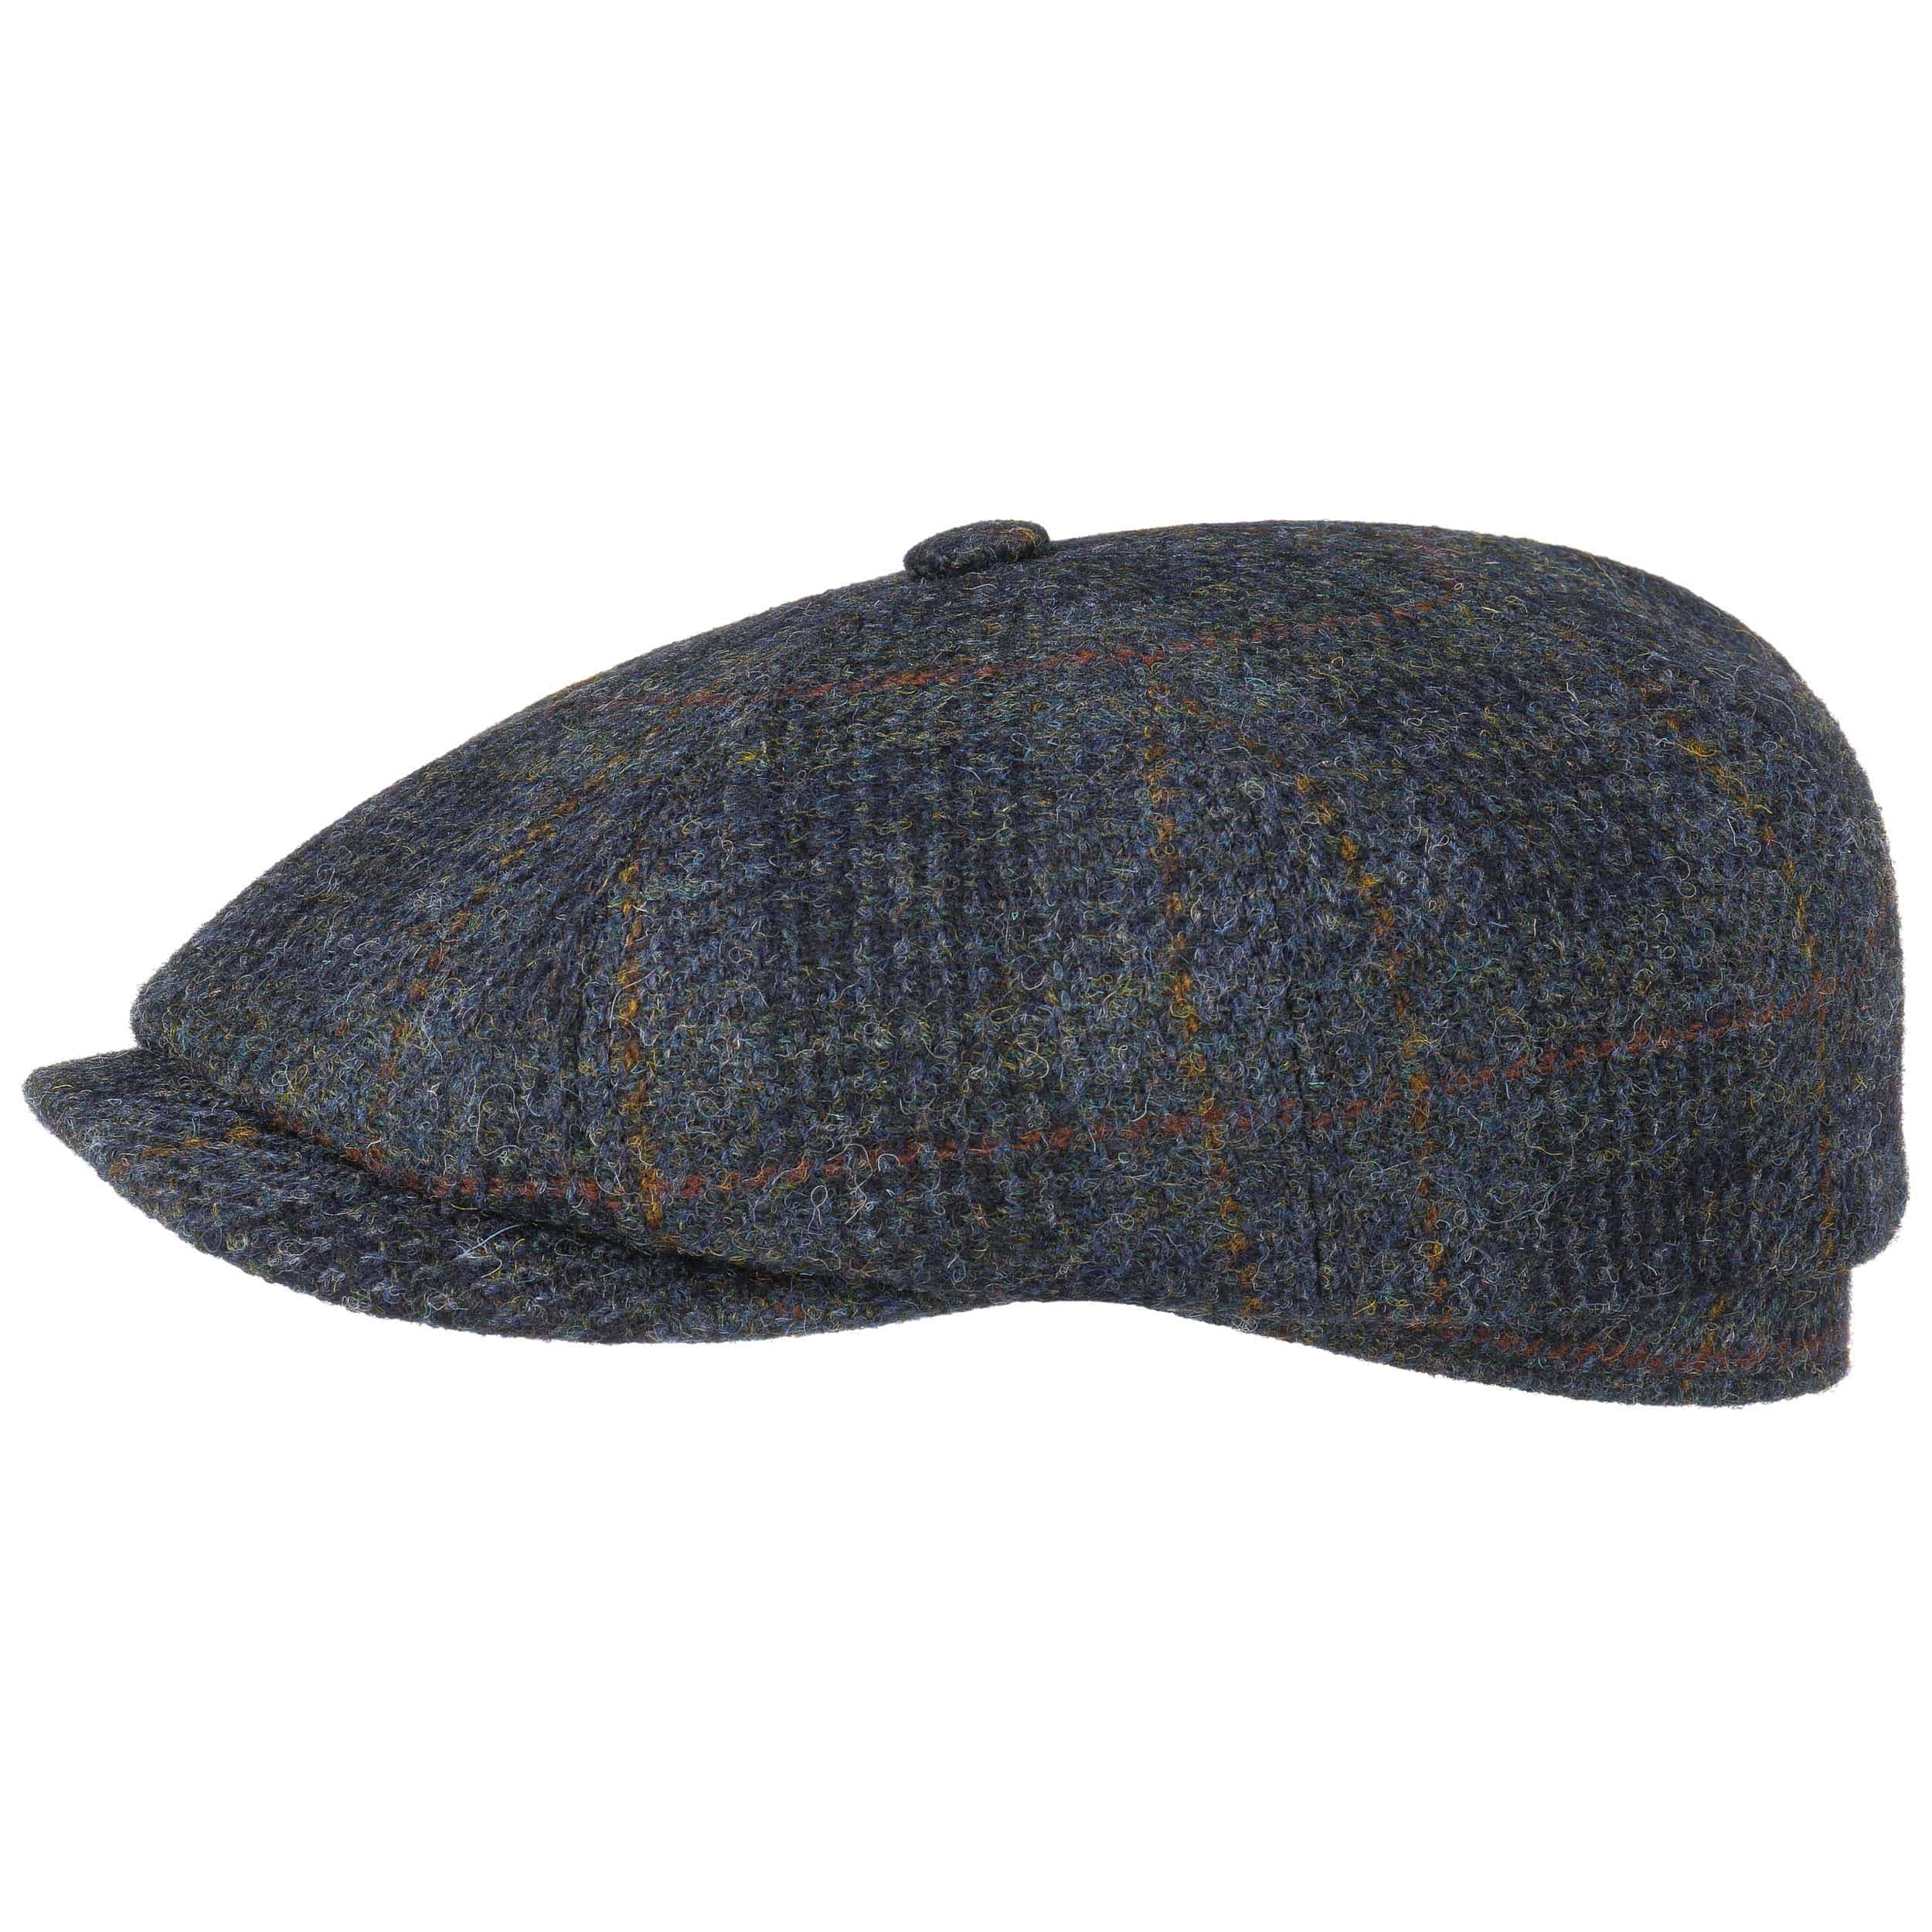 0b93c677865b9 Gorra Hatteras Harris Tweed Check by Stetson - Gorras - sombreroshop.es